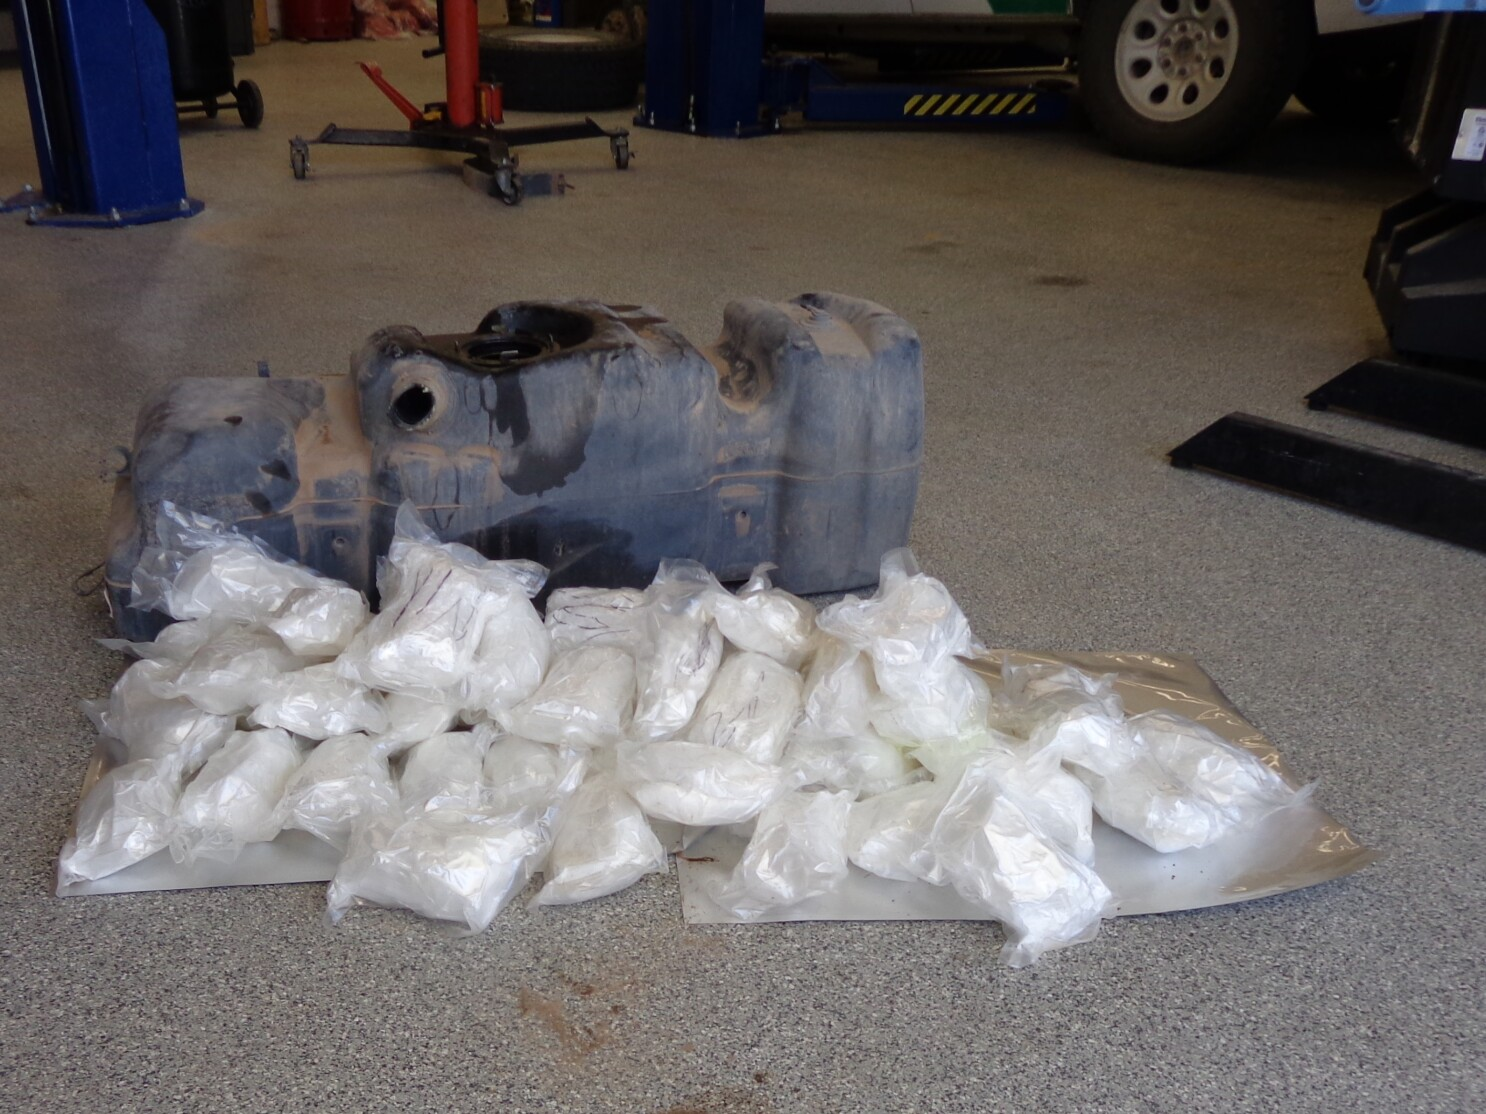 Border Patrol finds 55 pounds of methamphetamine in truck's gas tank